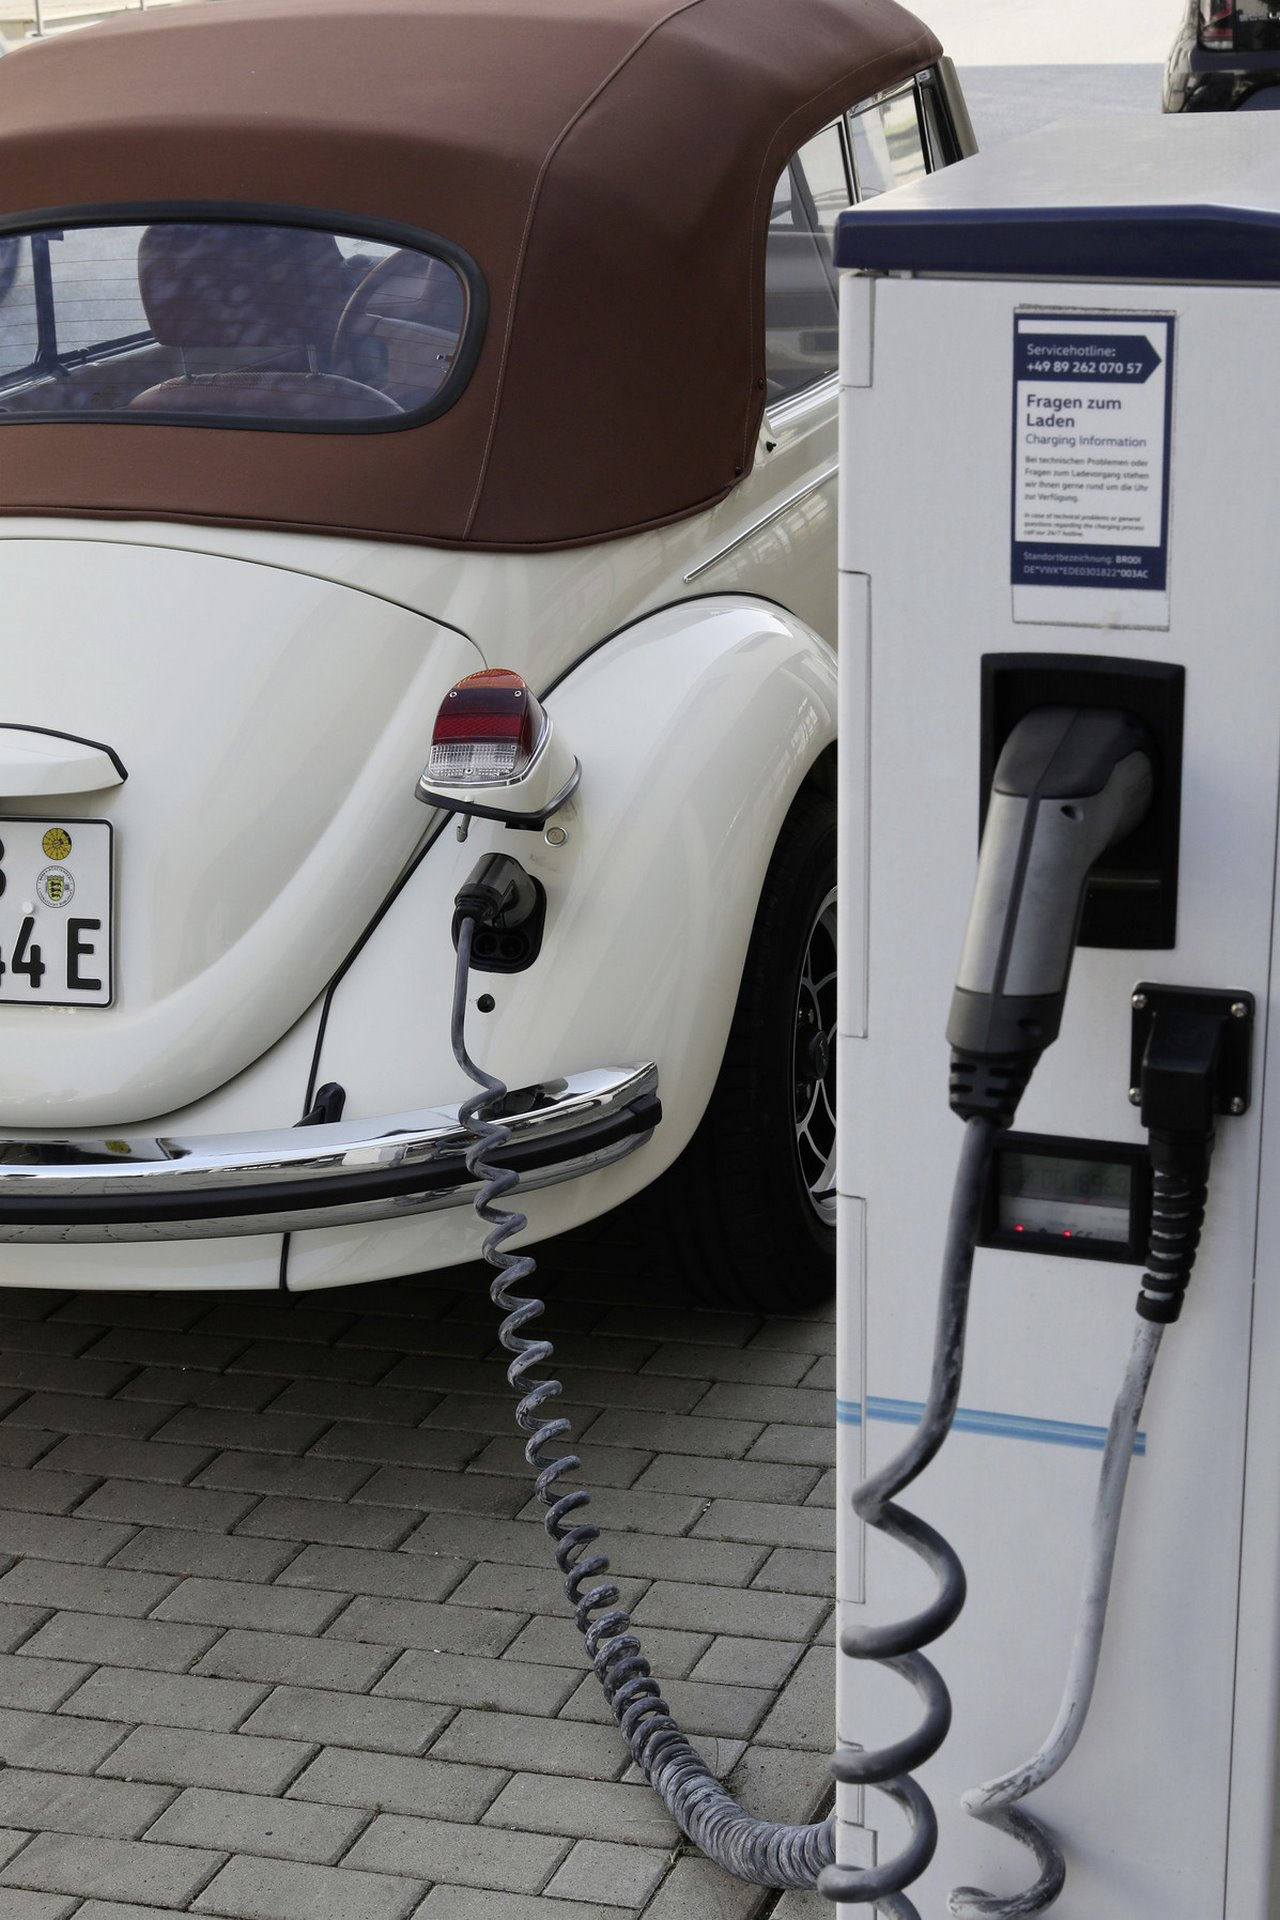 The e-Beetle is being charged